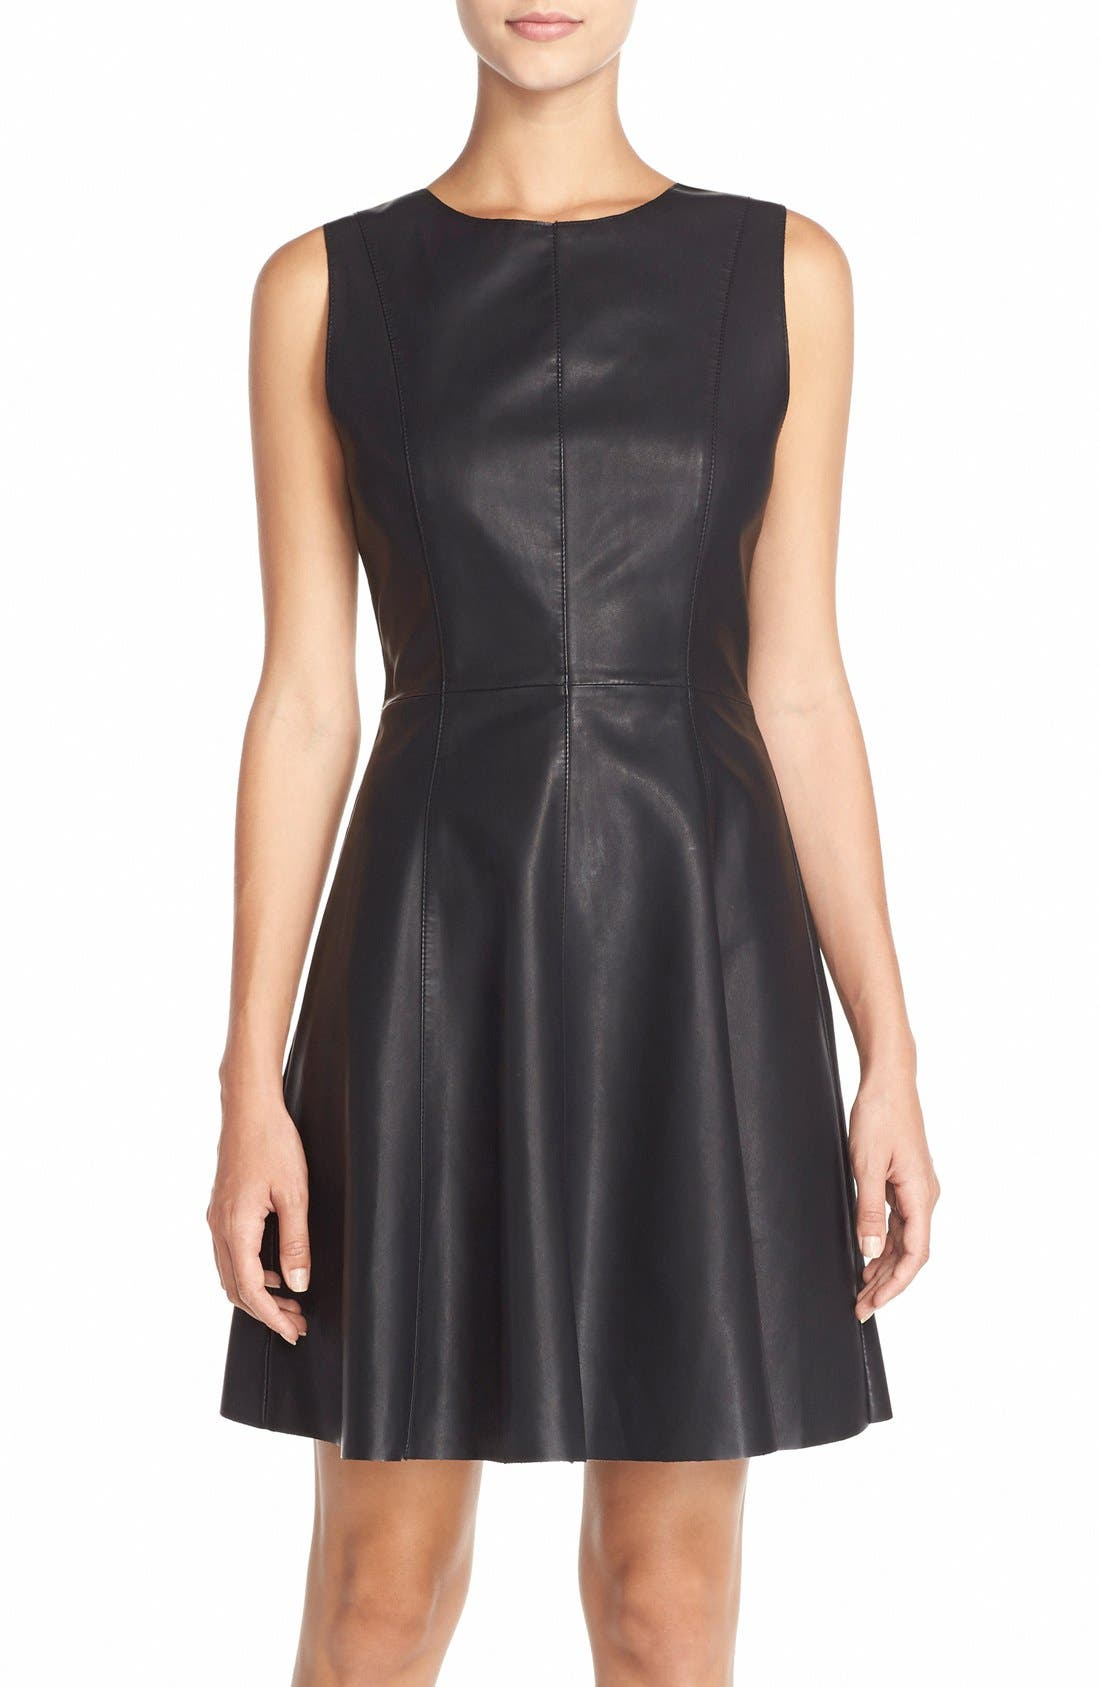 Alternate Image 1 Selected - BB Dakota Faux Leather Fit & Flare Dress